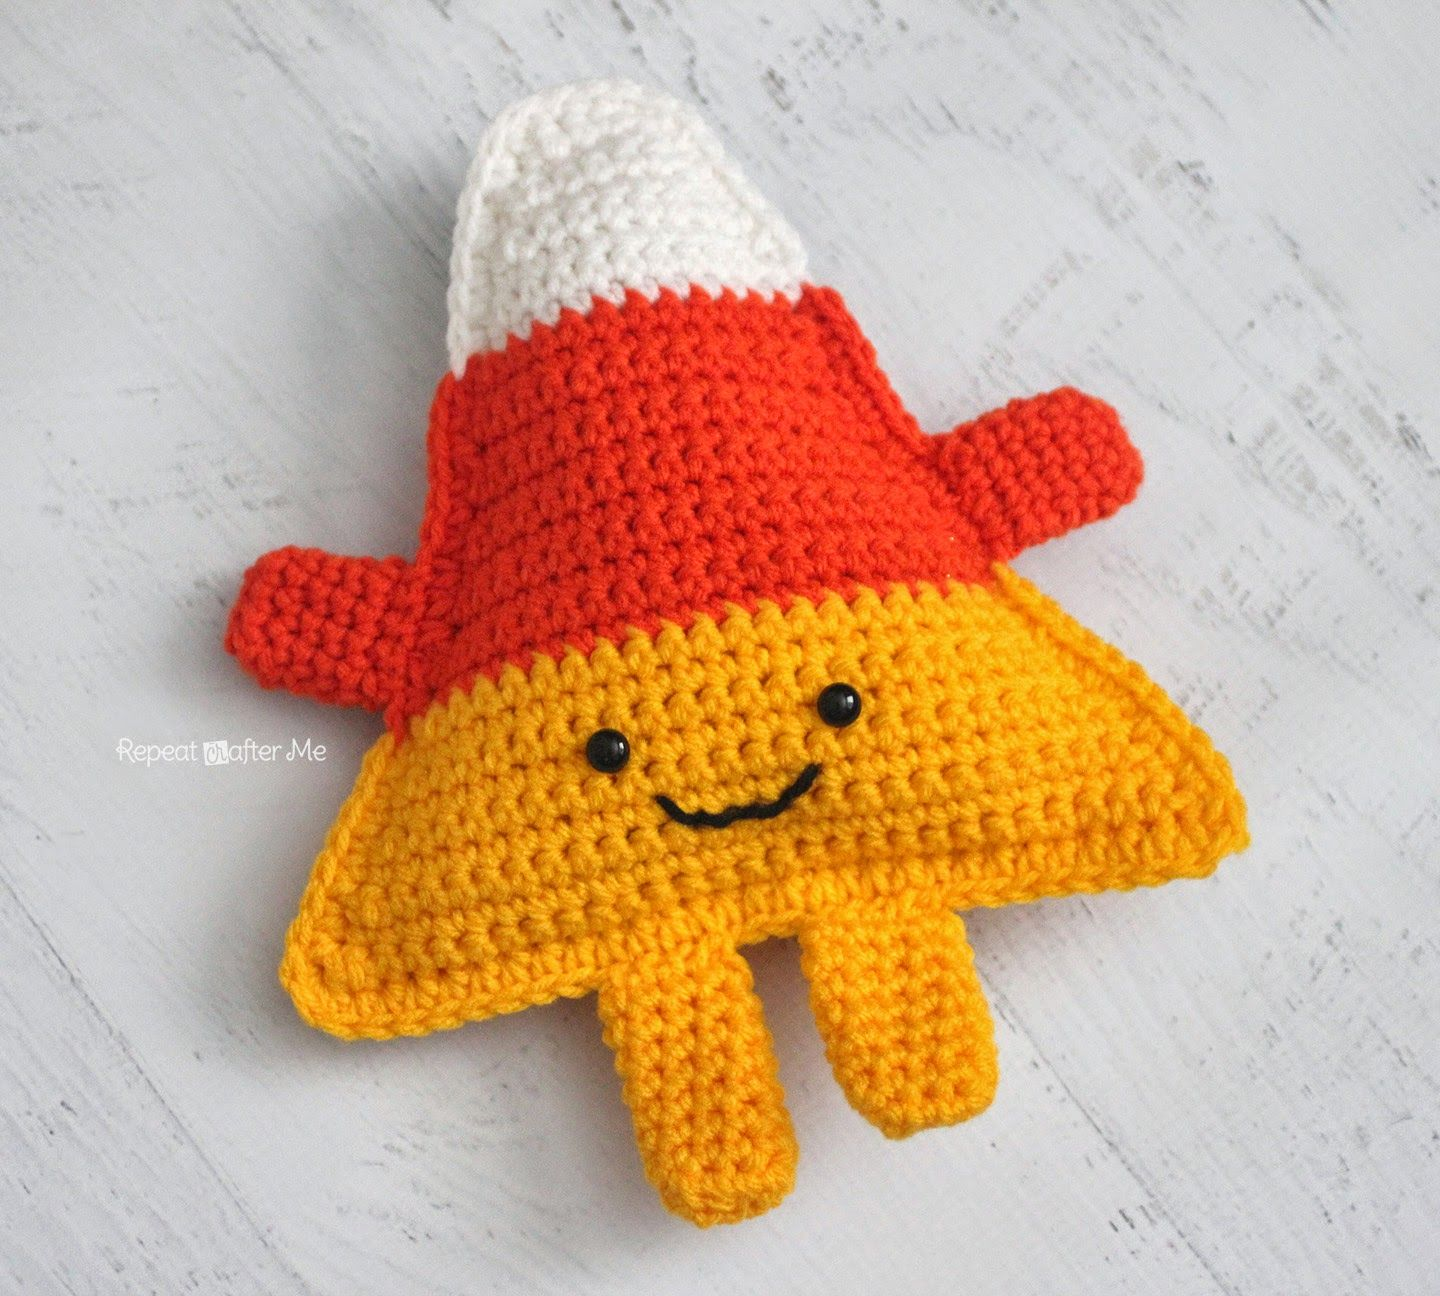 Repeat Crafter Me: Cuddly Crochet Candy Corn. FREE PATTERN 9/14 ...